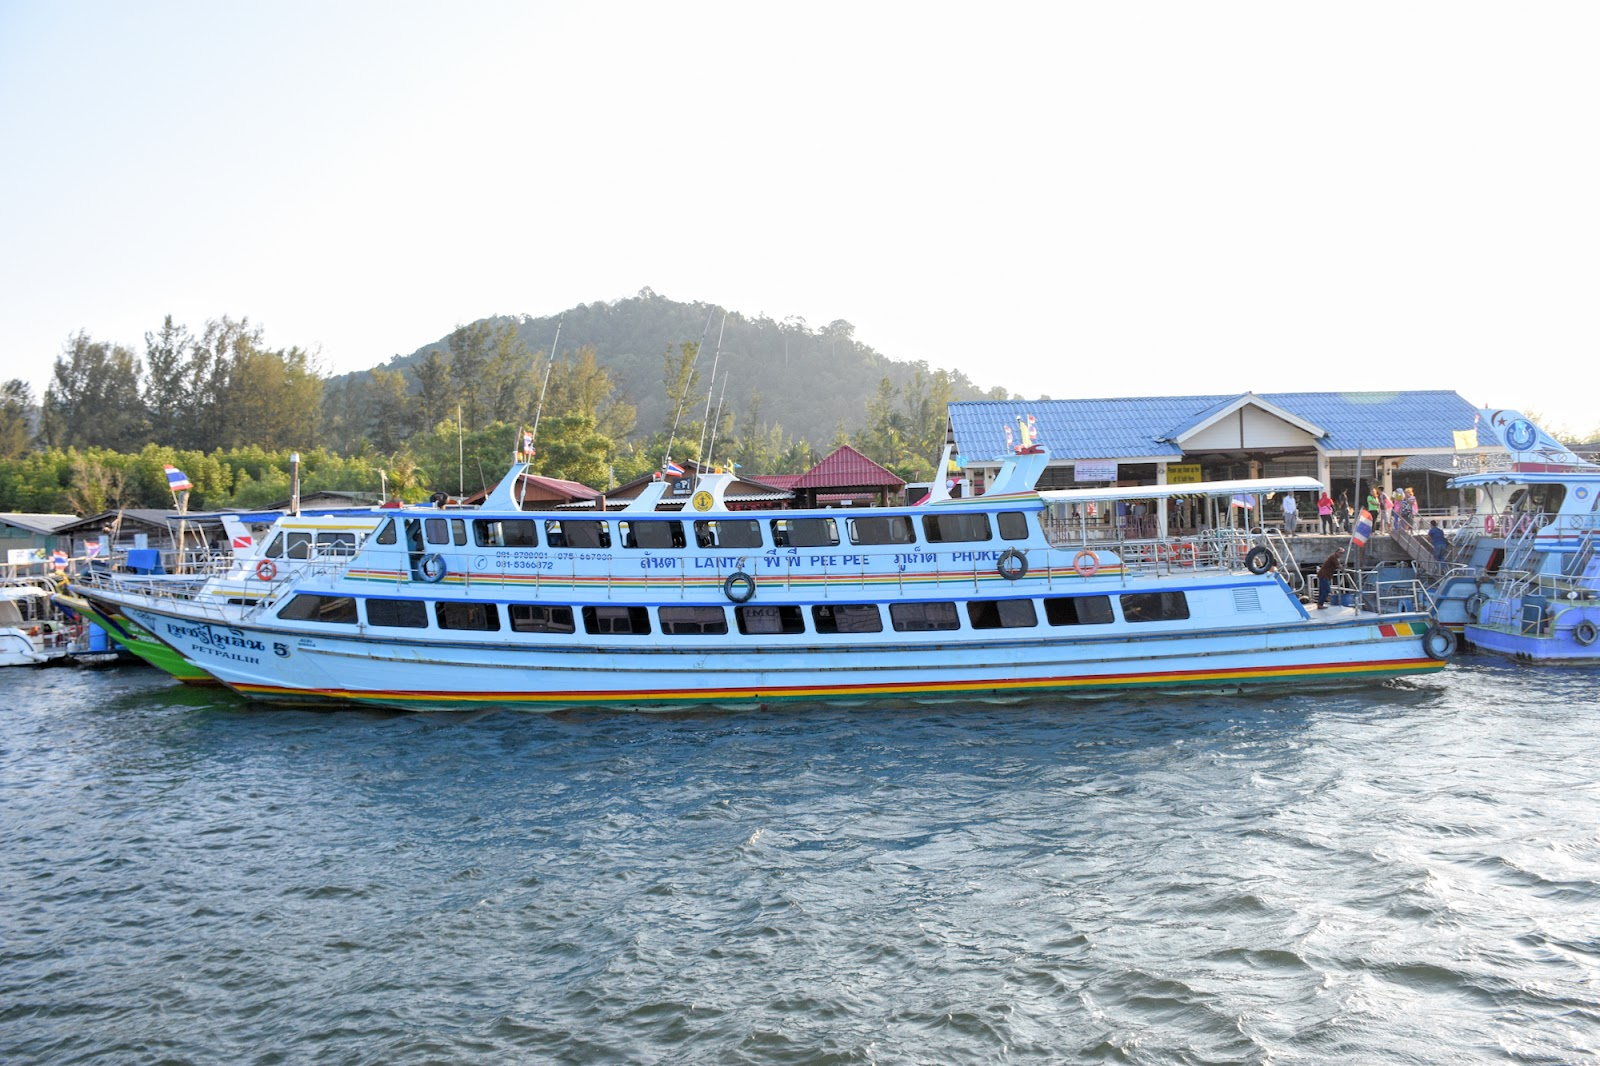 Travel from Koh Ngai directly to Koh Lanta by Express Boat